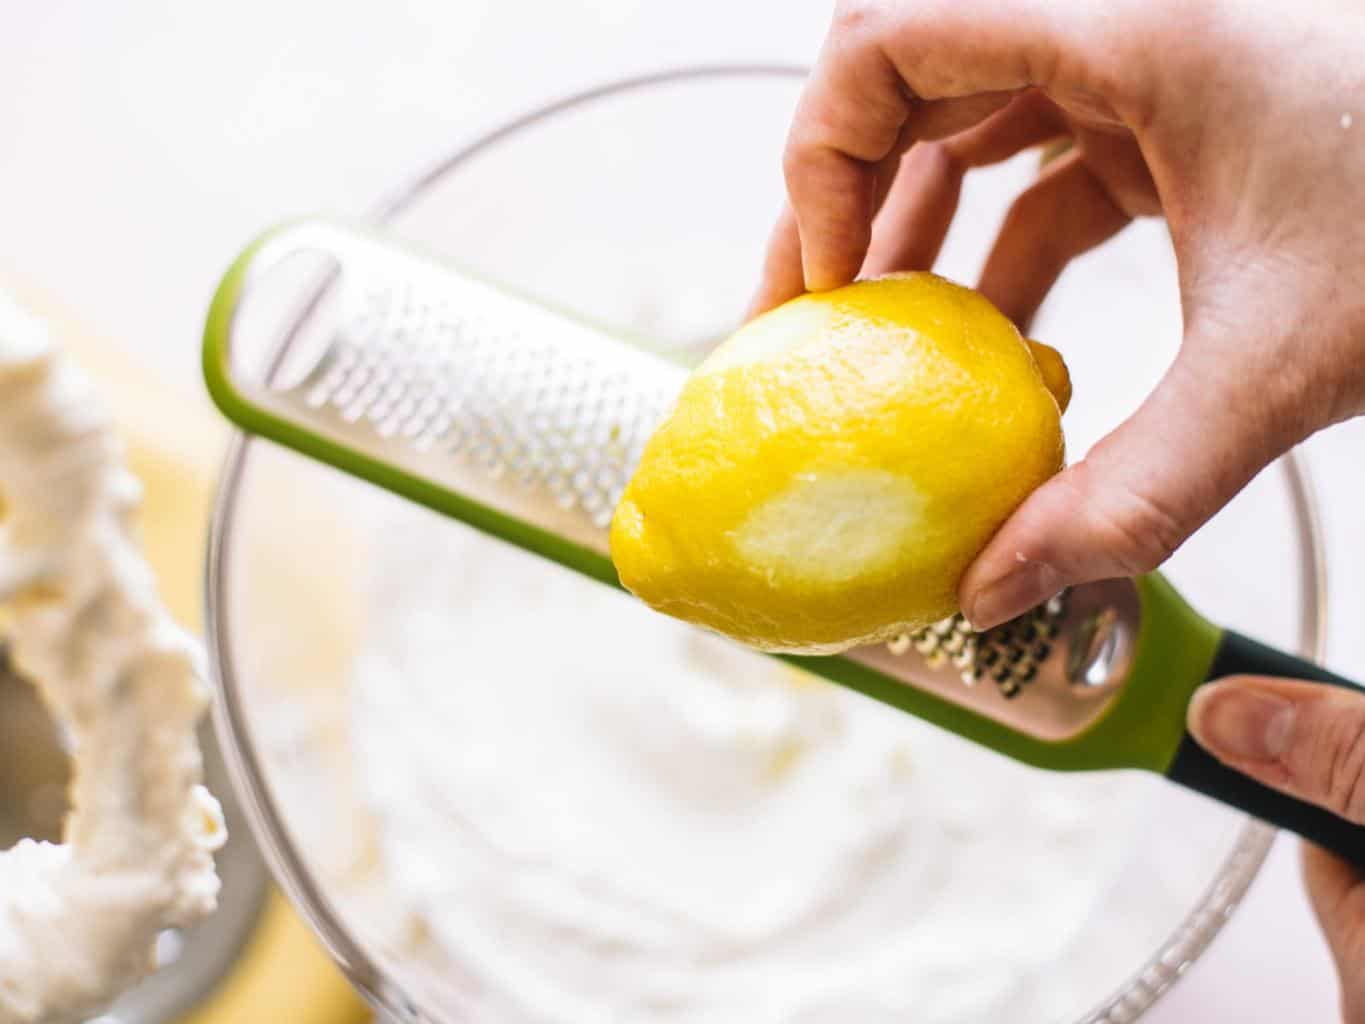 Lemon being zested over a clear bowl filled with whipped cream cheese